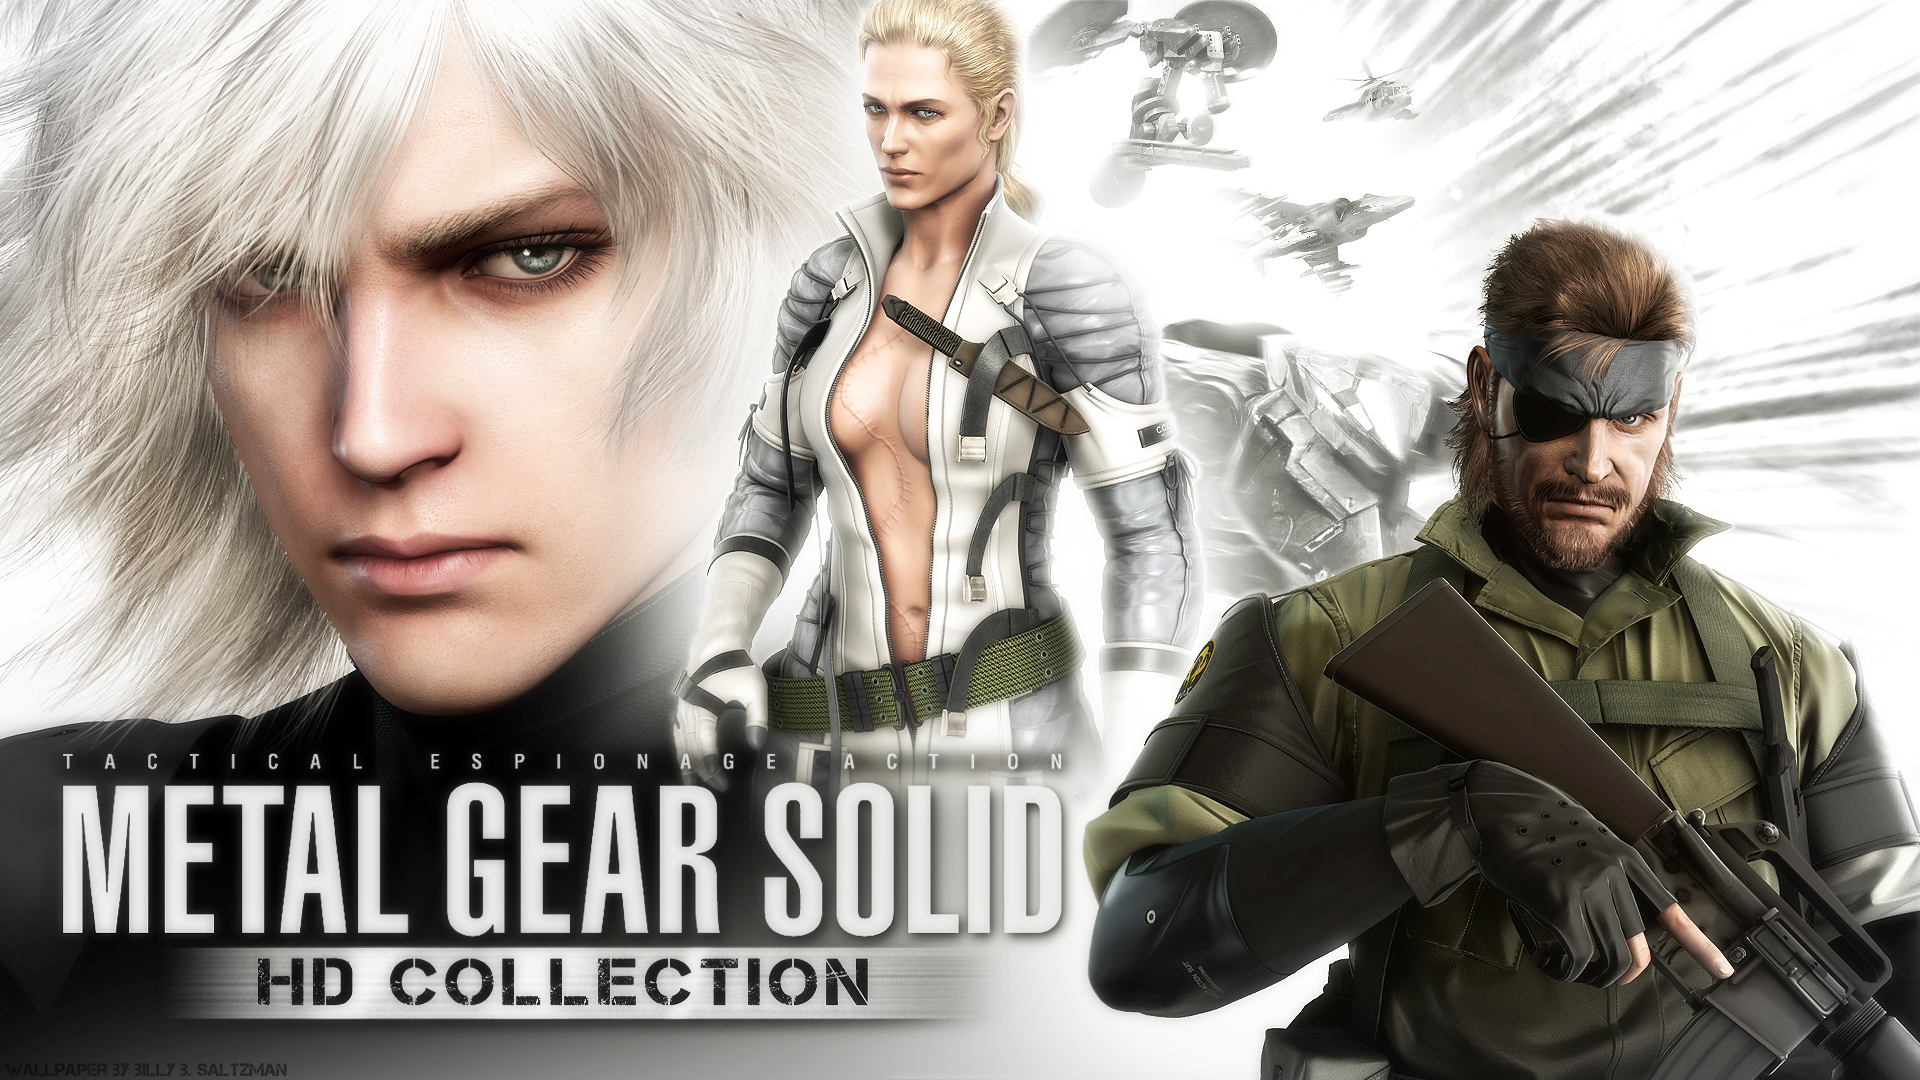 Metal Gear Solid Hd Wallpaper By Billysan291 On Deviantart